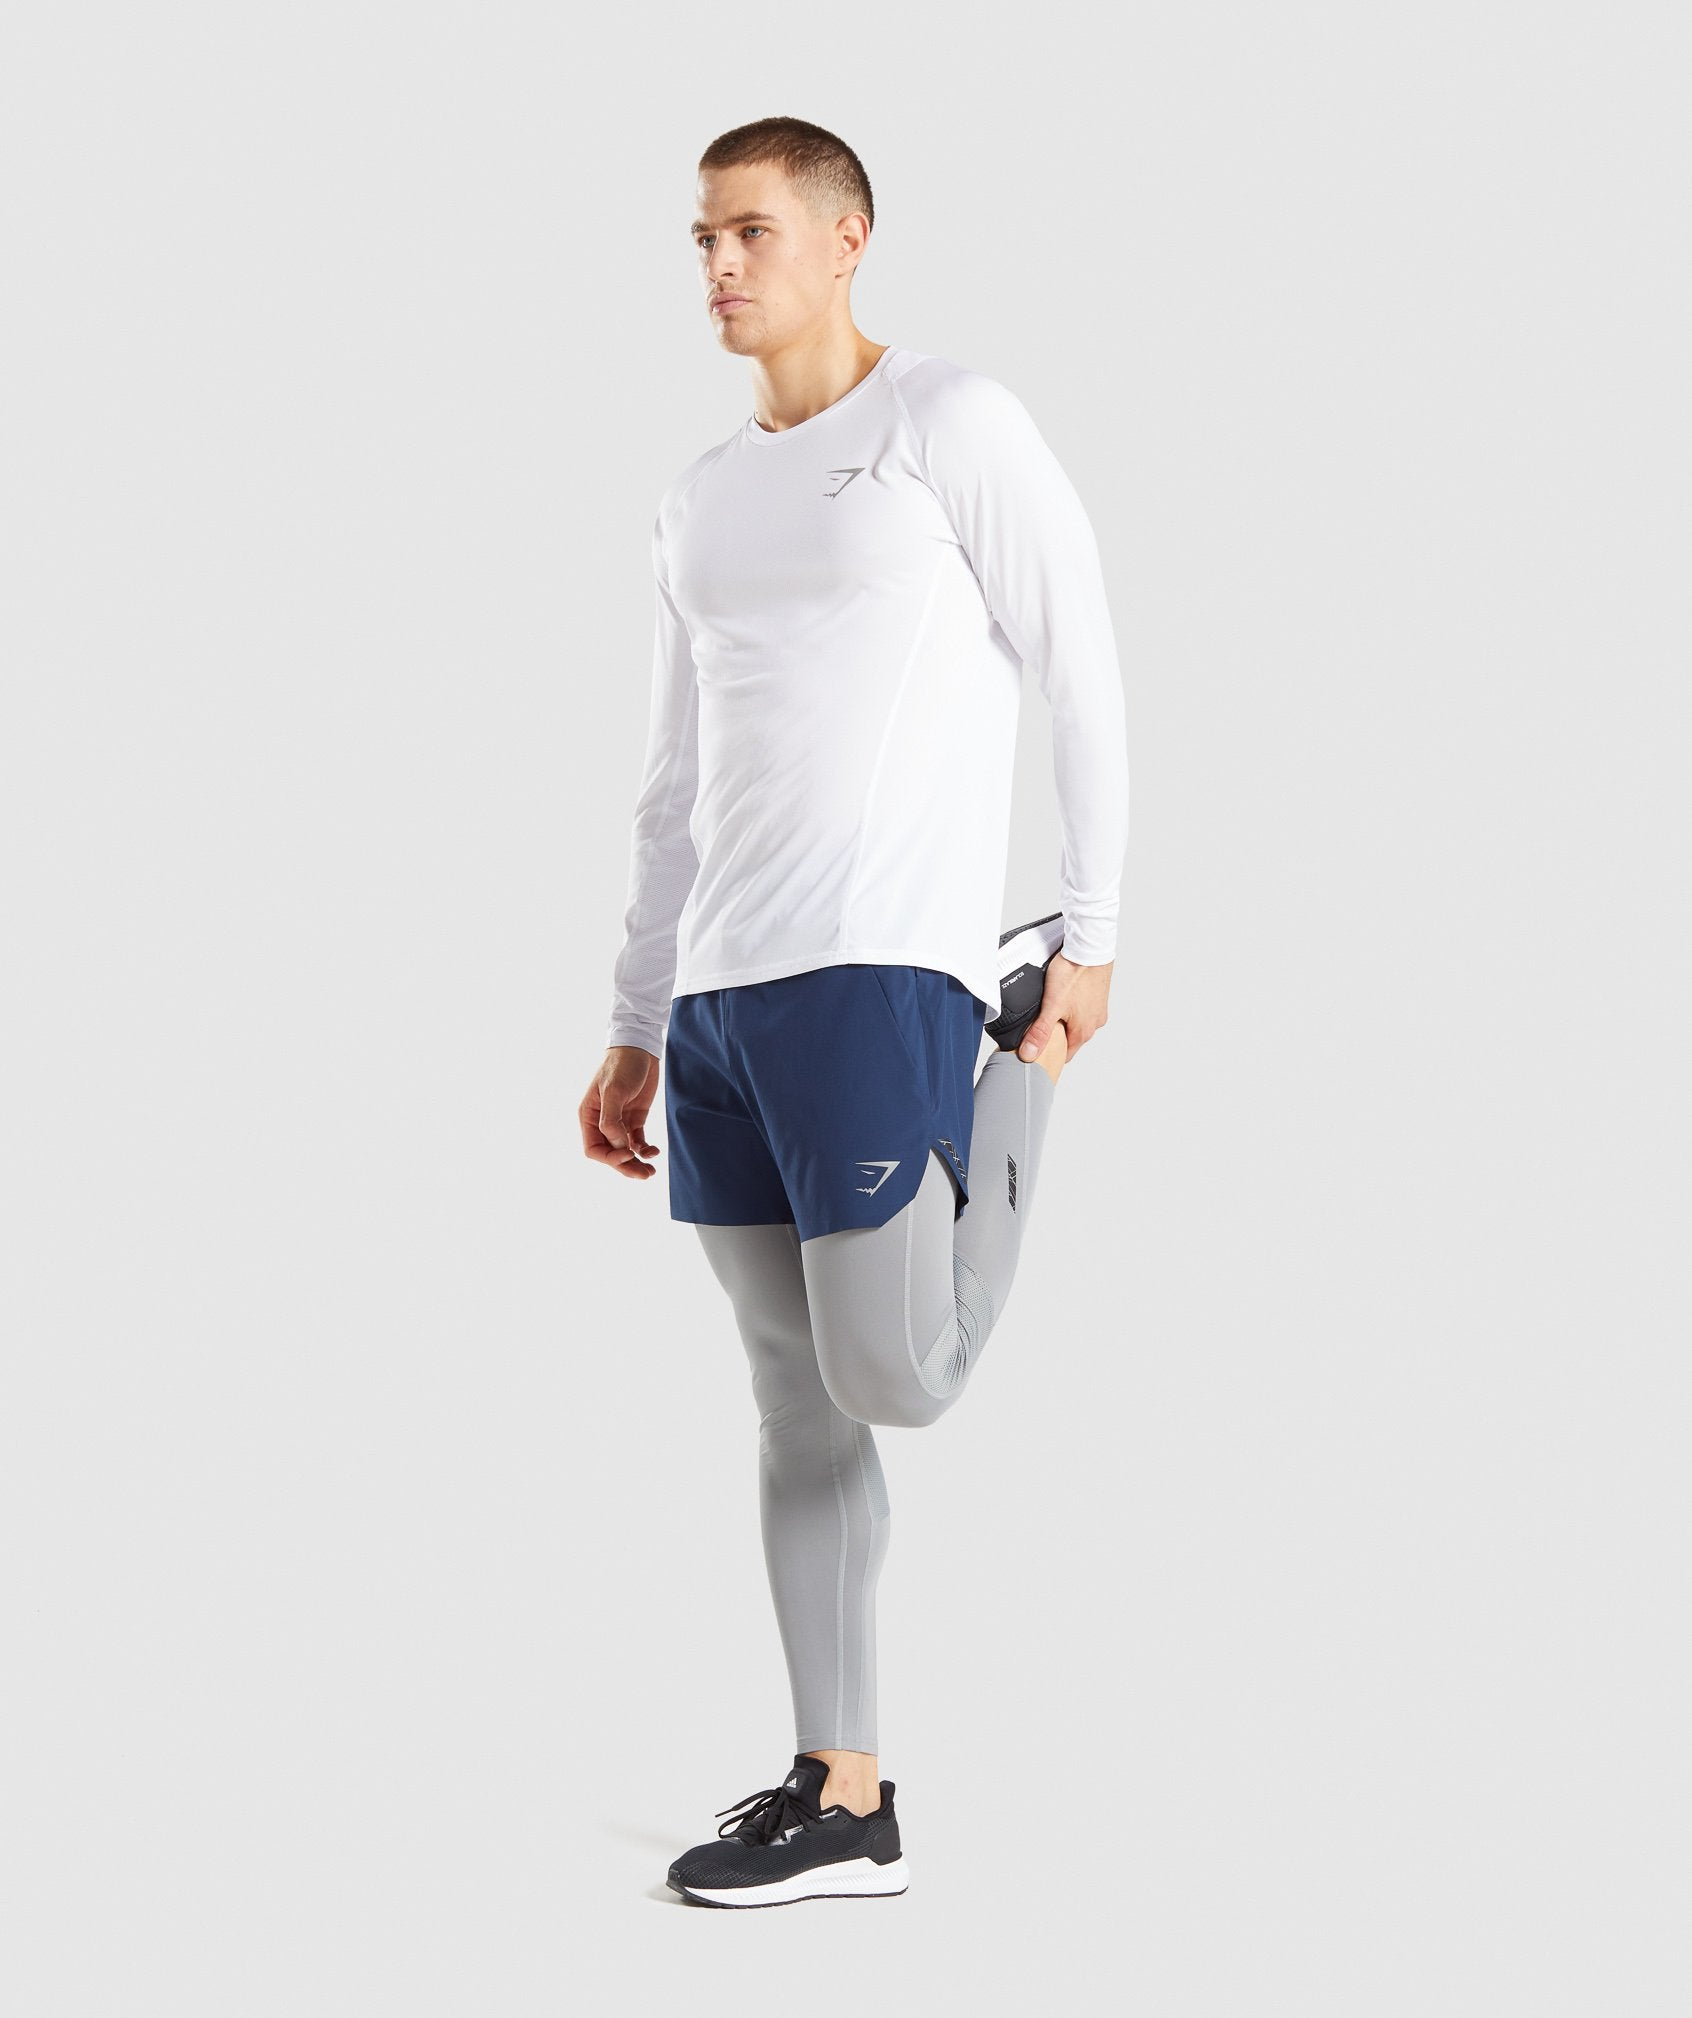 Classier: Buy Gymshark Speed Long Sleeve T-Shirt - White - Gymshark